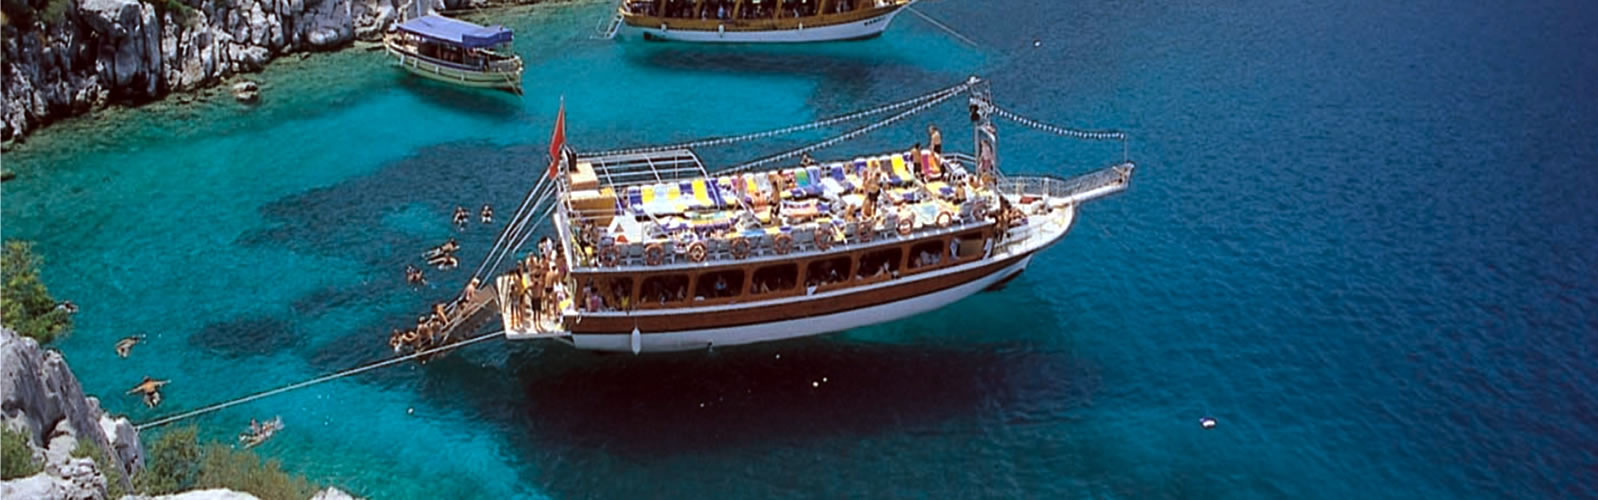 KUSADASI - ATHENS BY FERRY 4 DAYS 3 NIGHTS